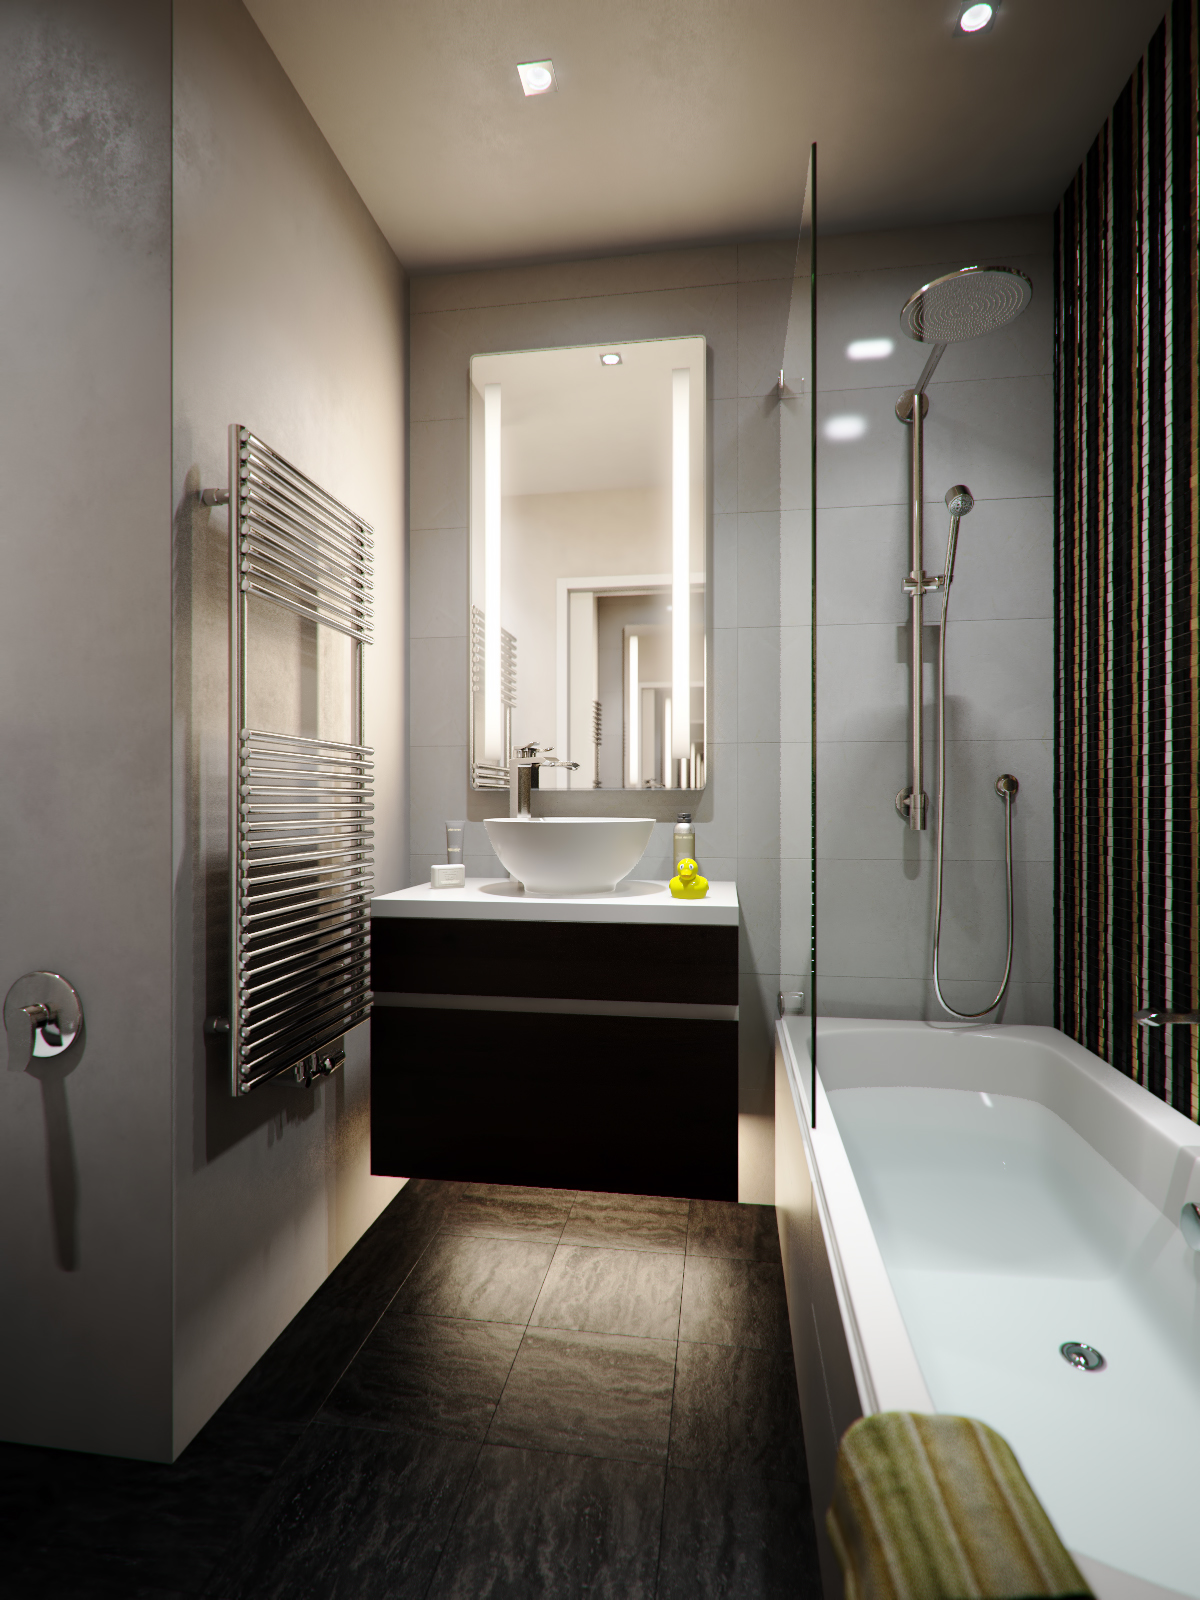 Apartment bathroom design - Apartment Bathroom Design 18